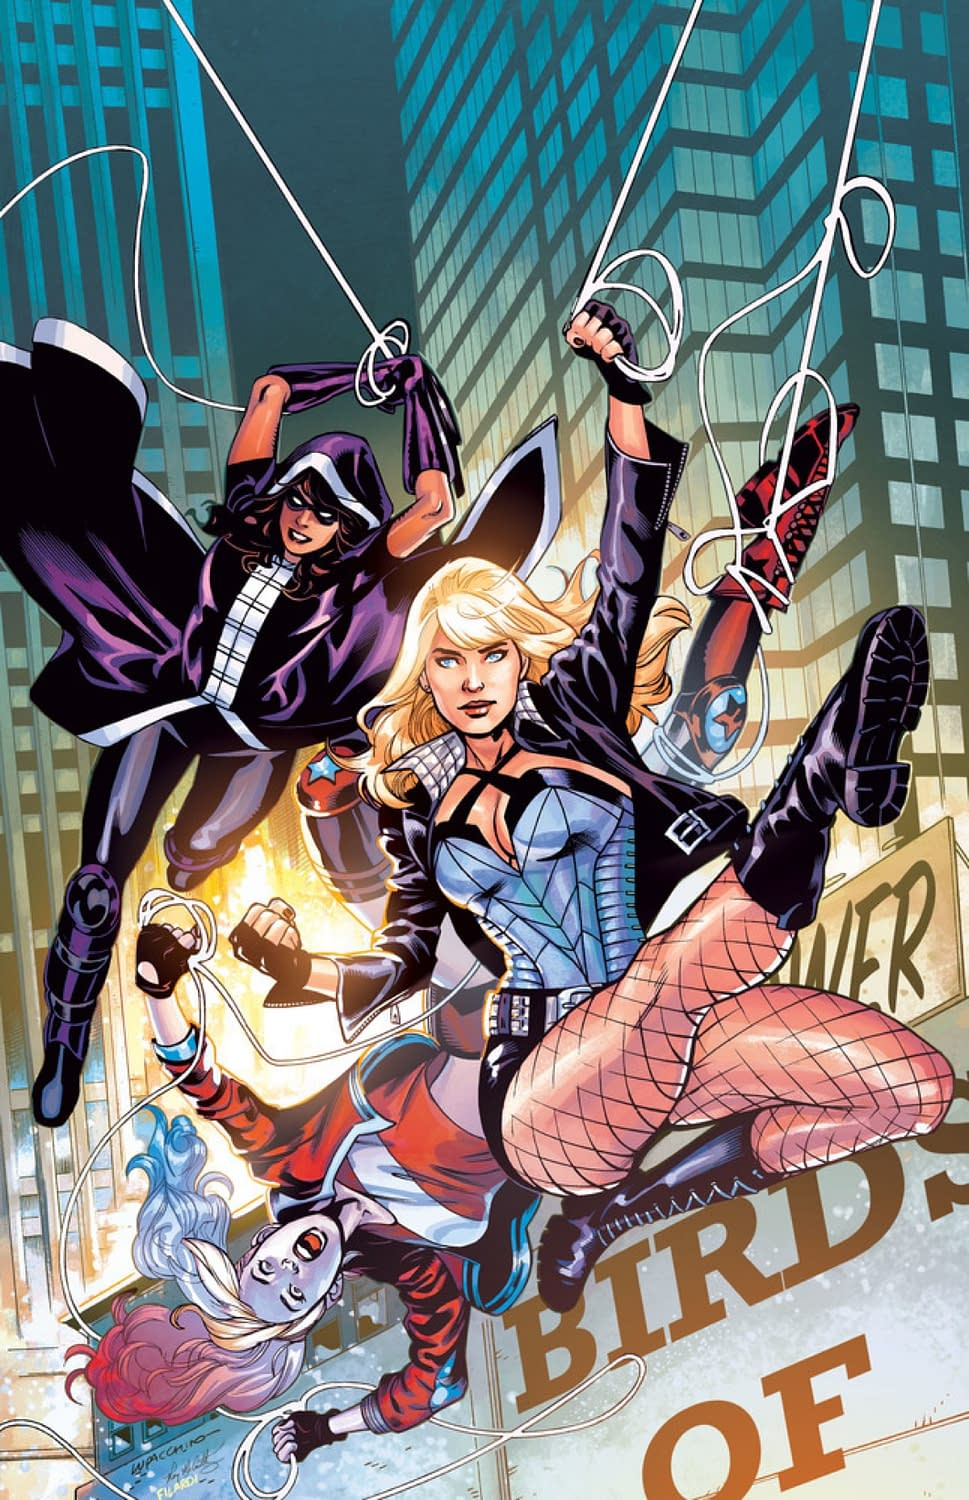 DC to Launch New Birds of Prey Book Book Starring Harley Quinn